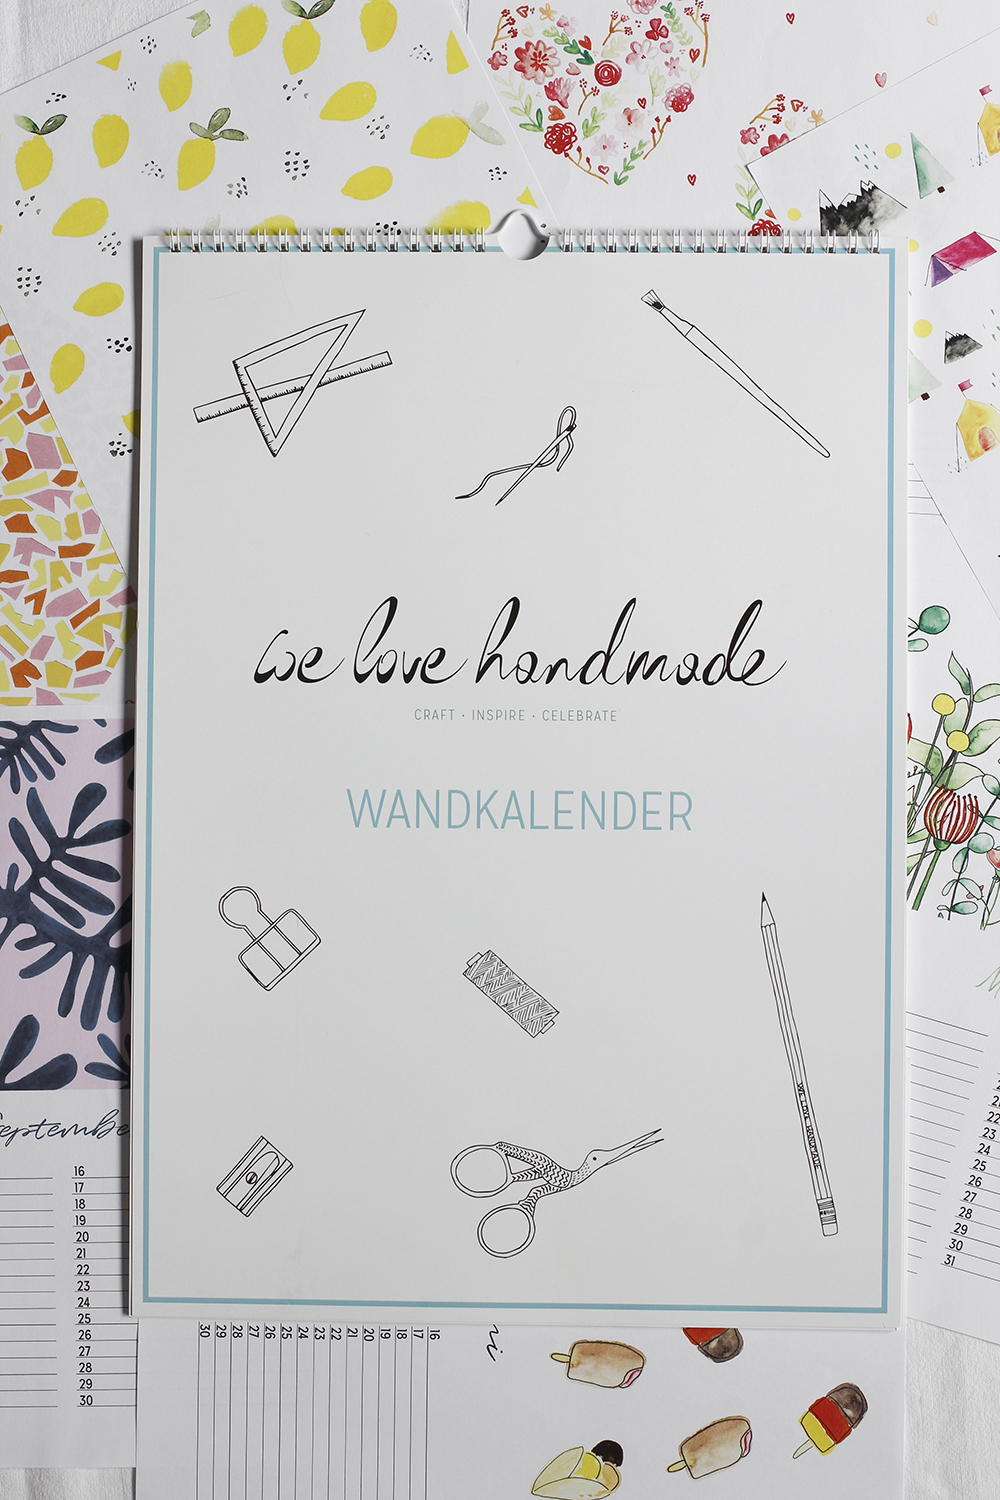 Kreativer Wandkalender | we love handmade